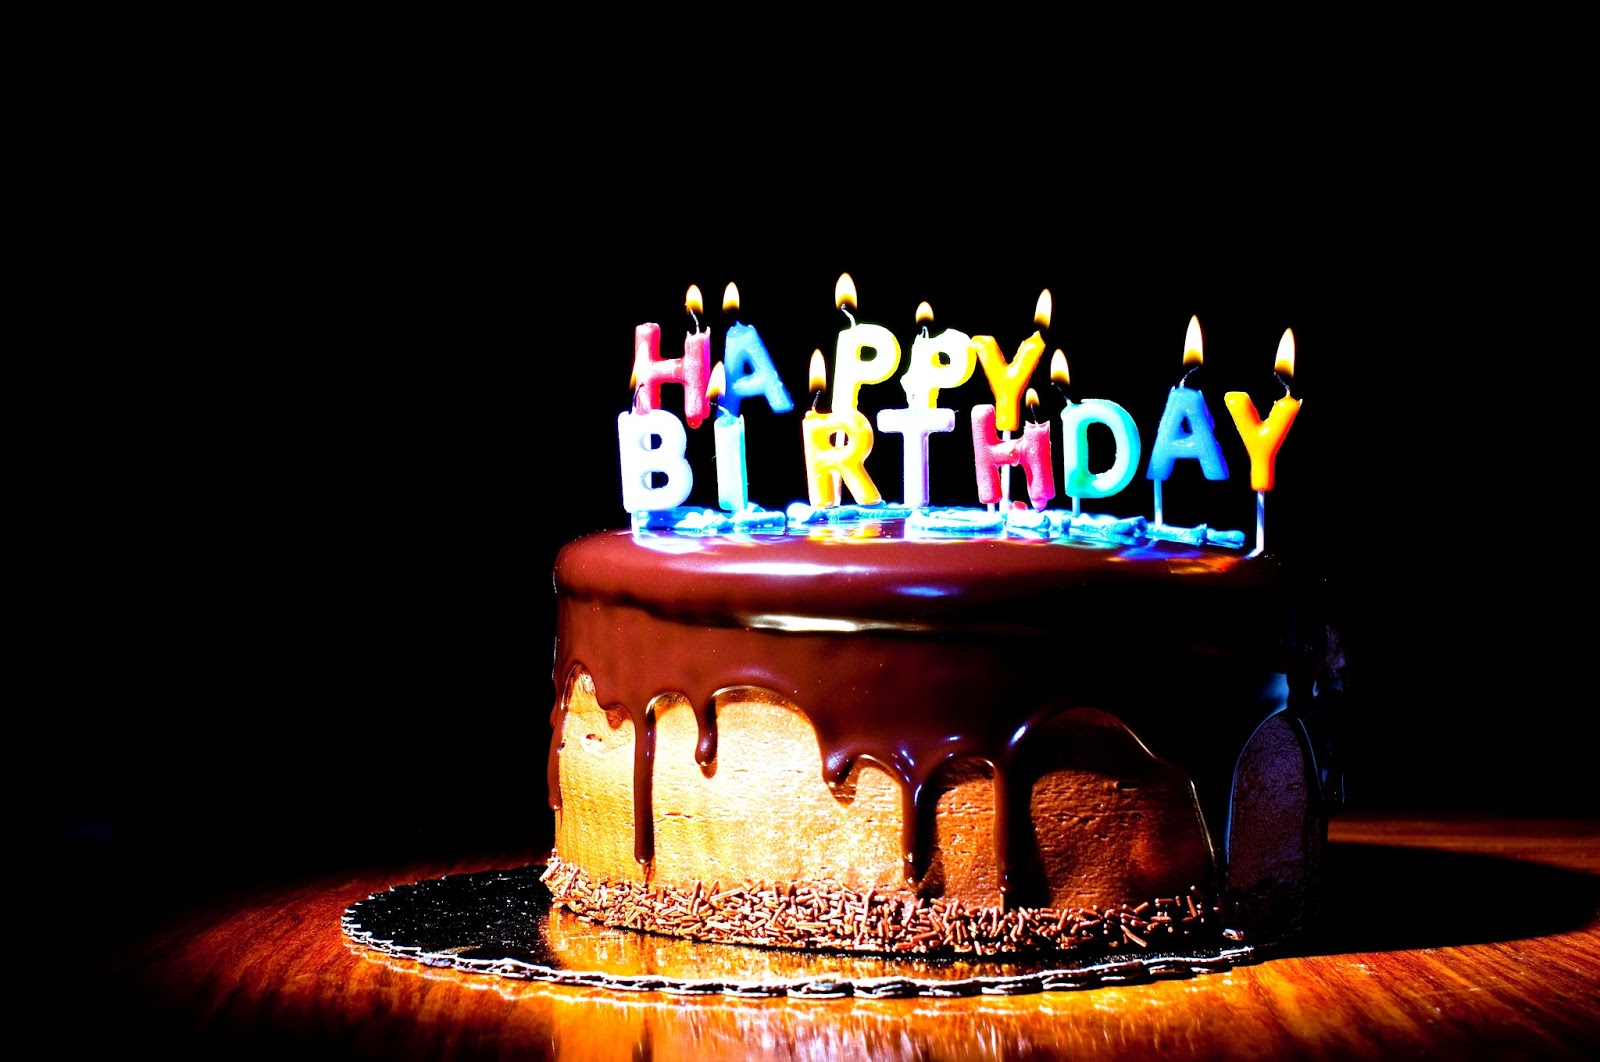 happy birthday picture messages mobile ; happy-birthday-mobile-hd-wallpapers%252Bcopy